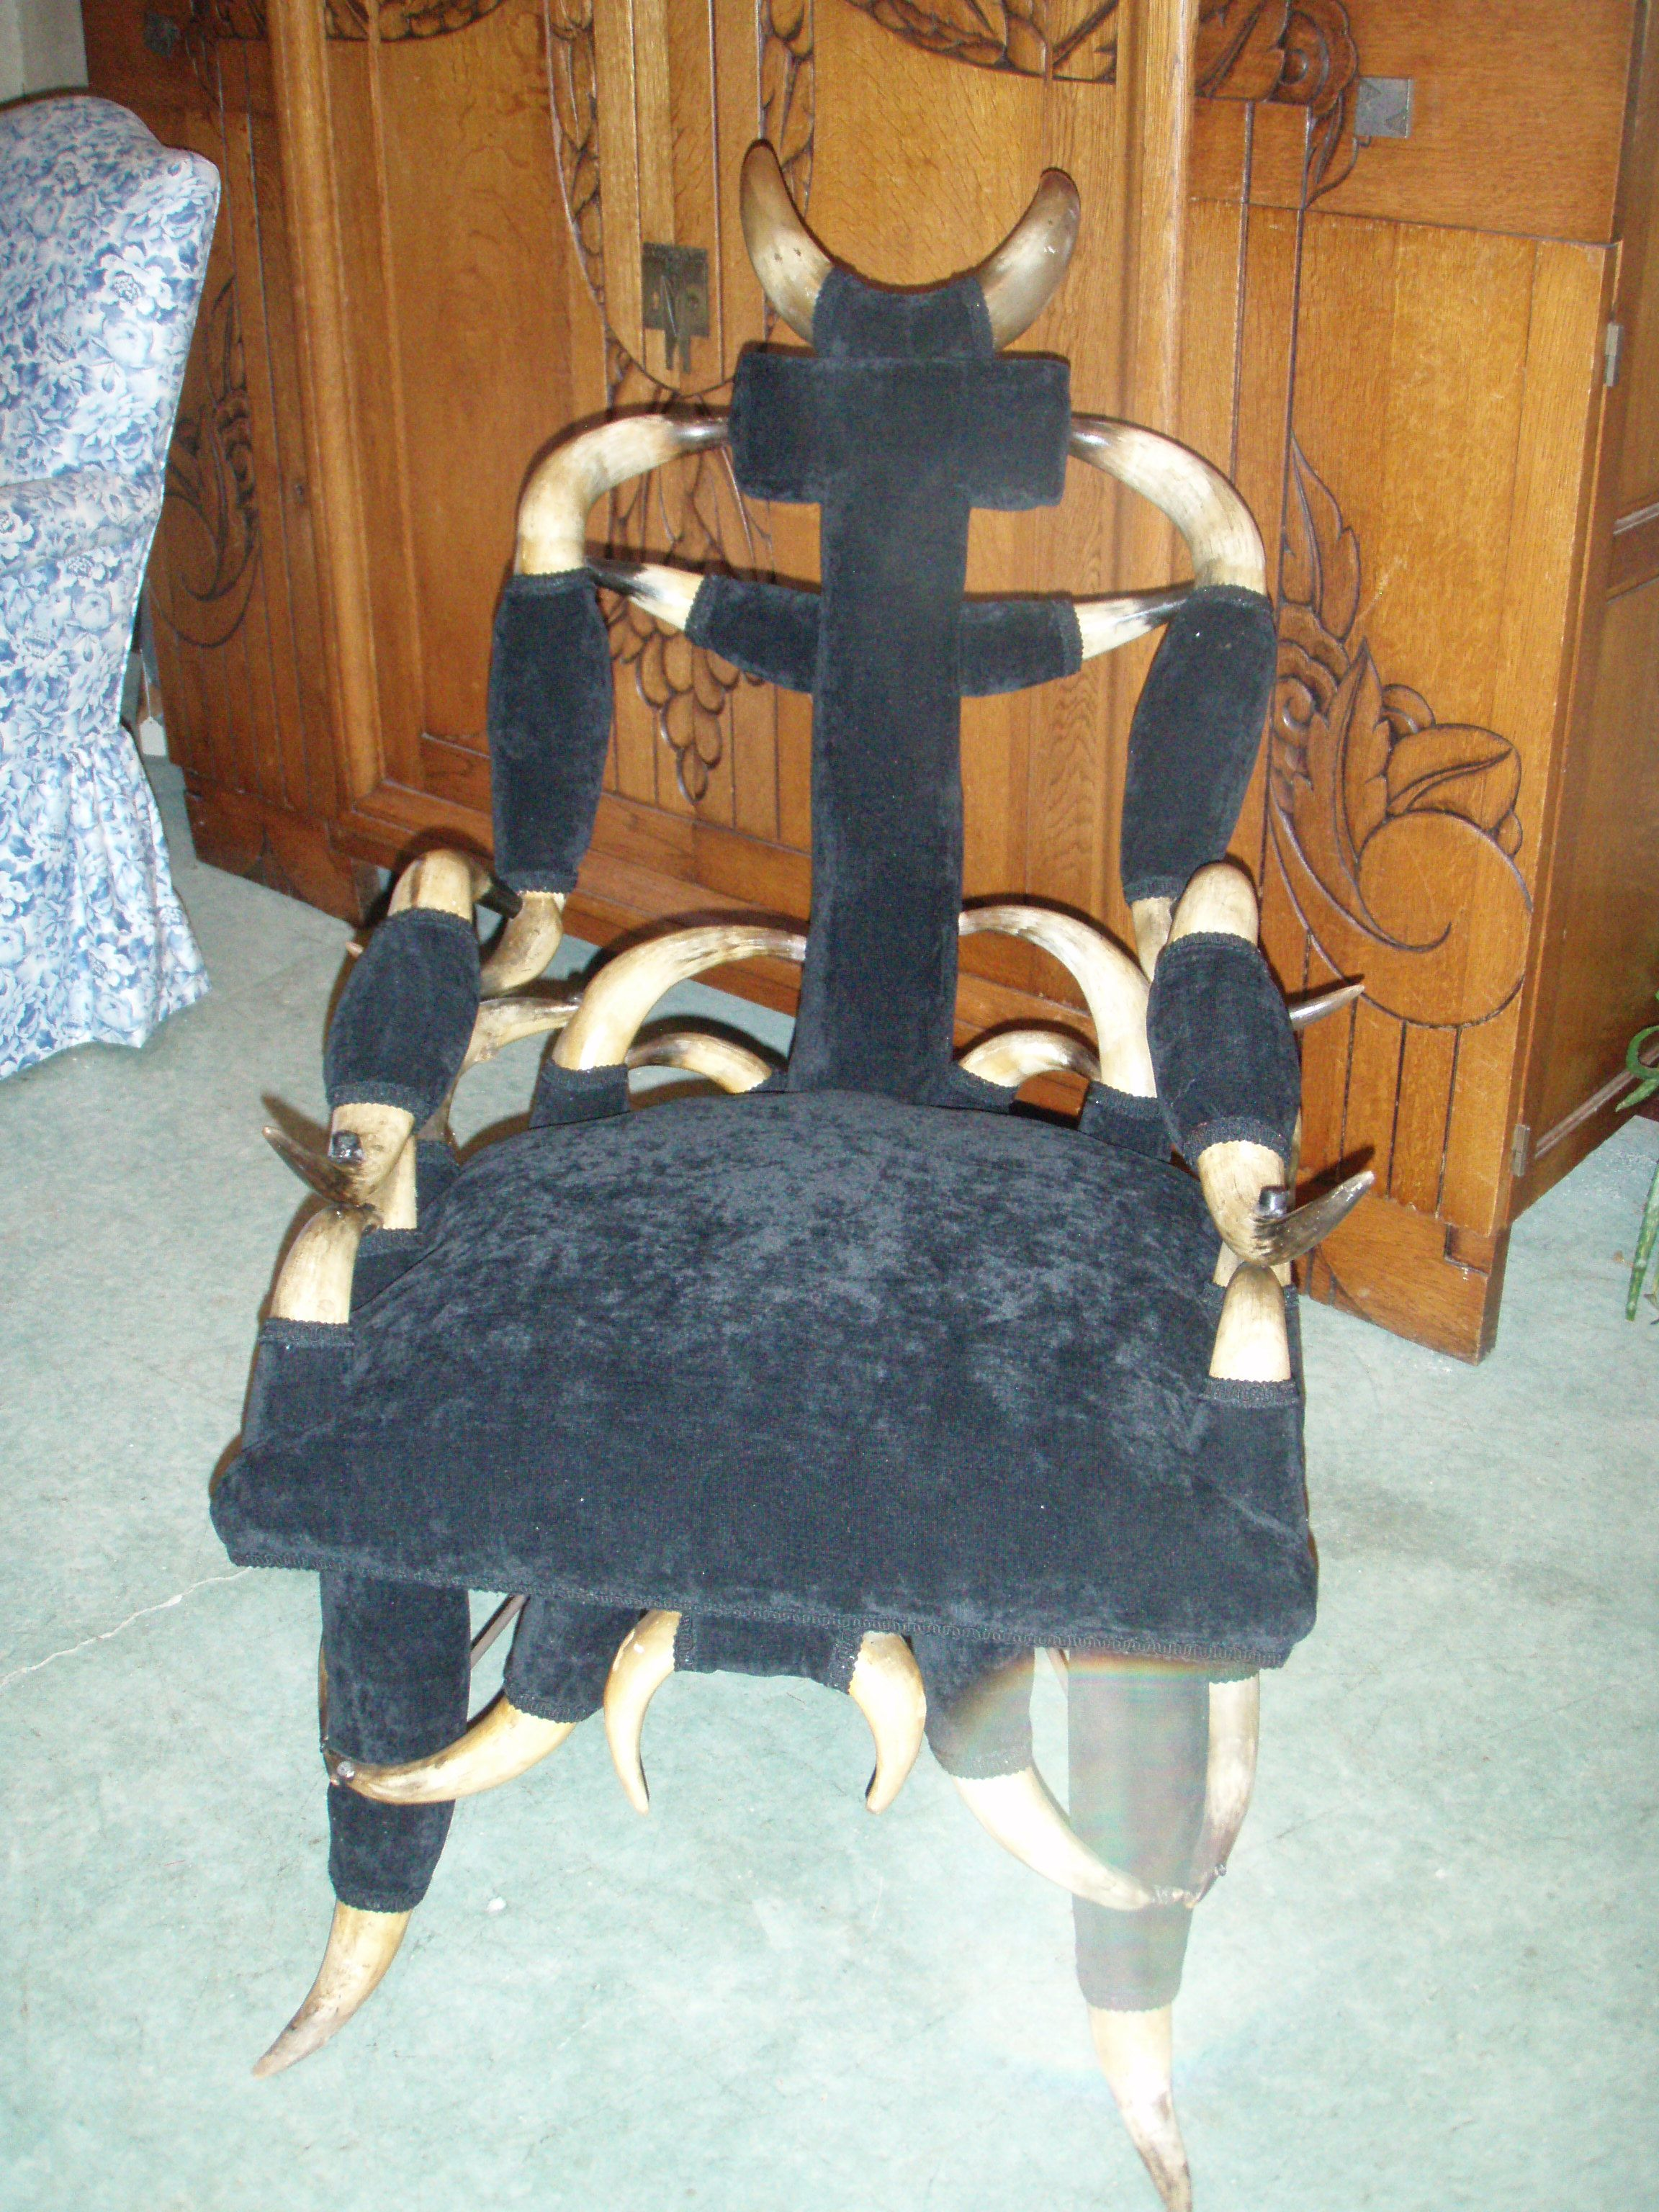 Upholstery by Buffalo Gals Upholstery and Slipcovers Dripping